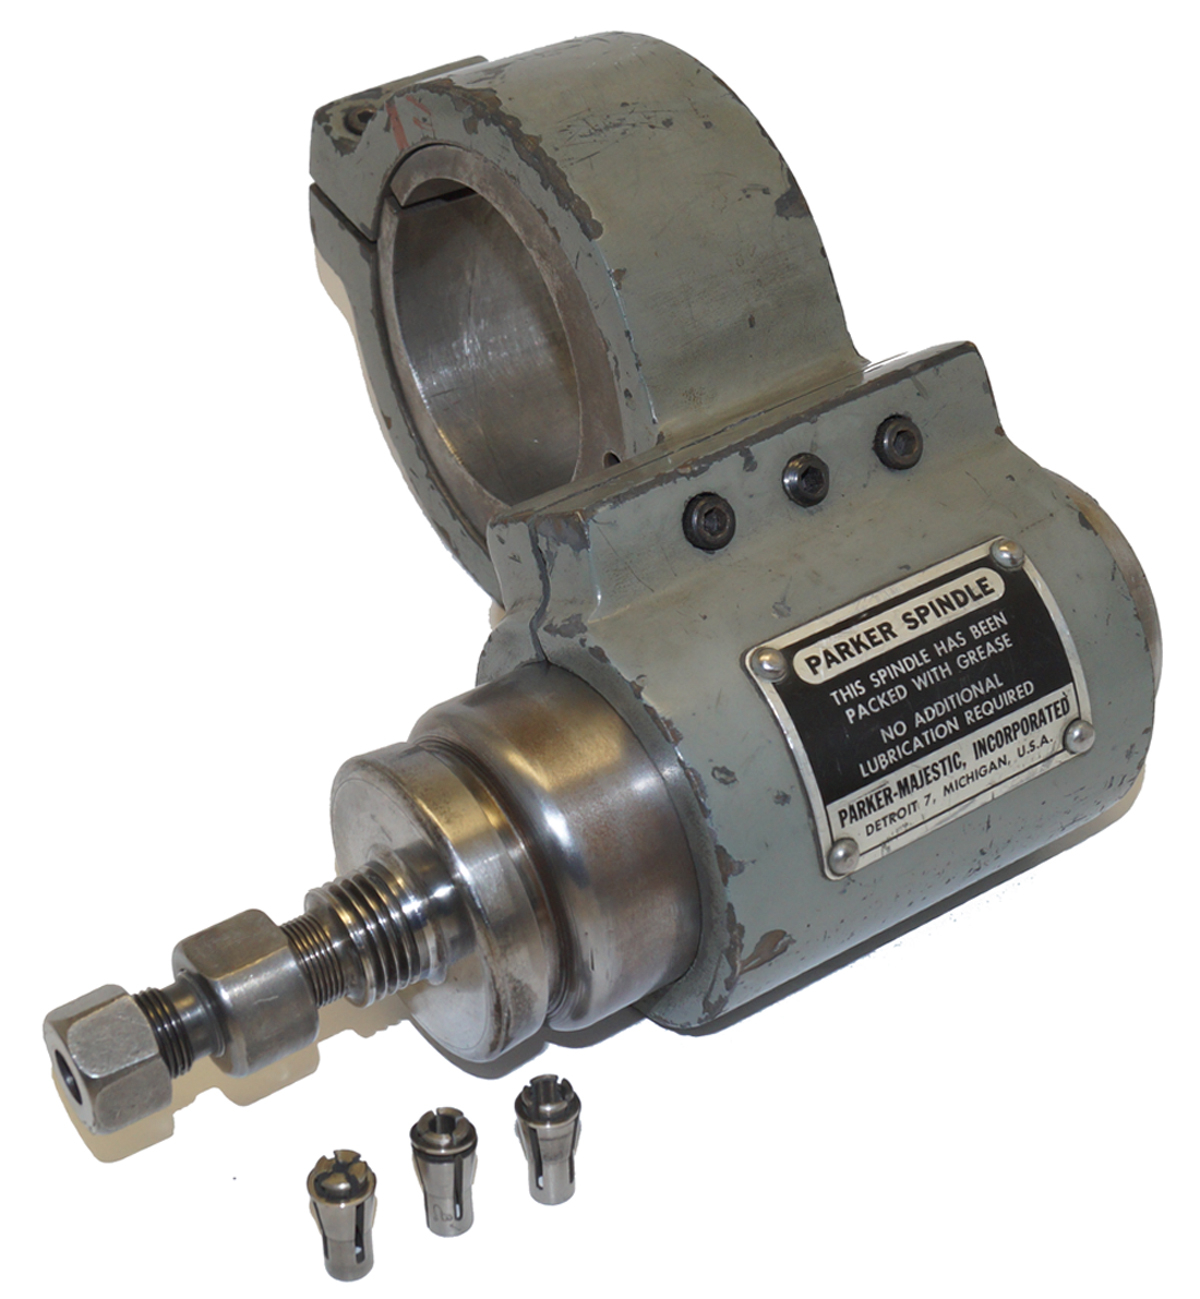 Parker High-Speed Spindle Attachement - 30,000 RPM